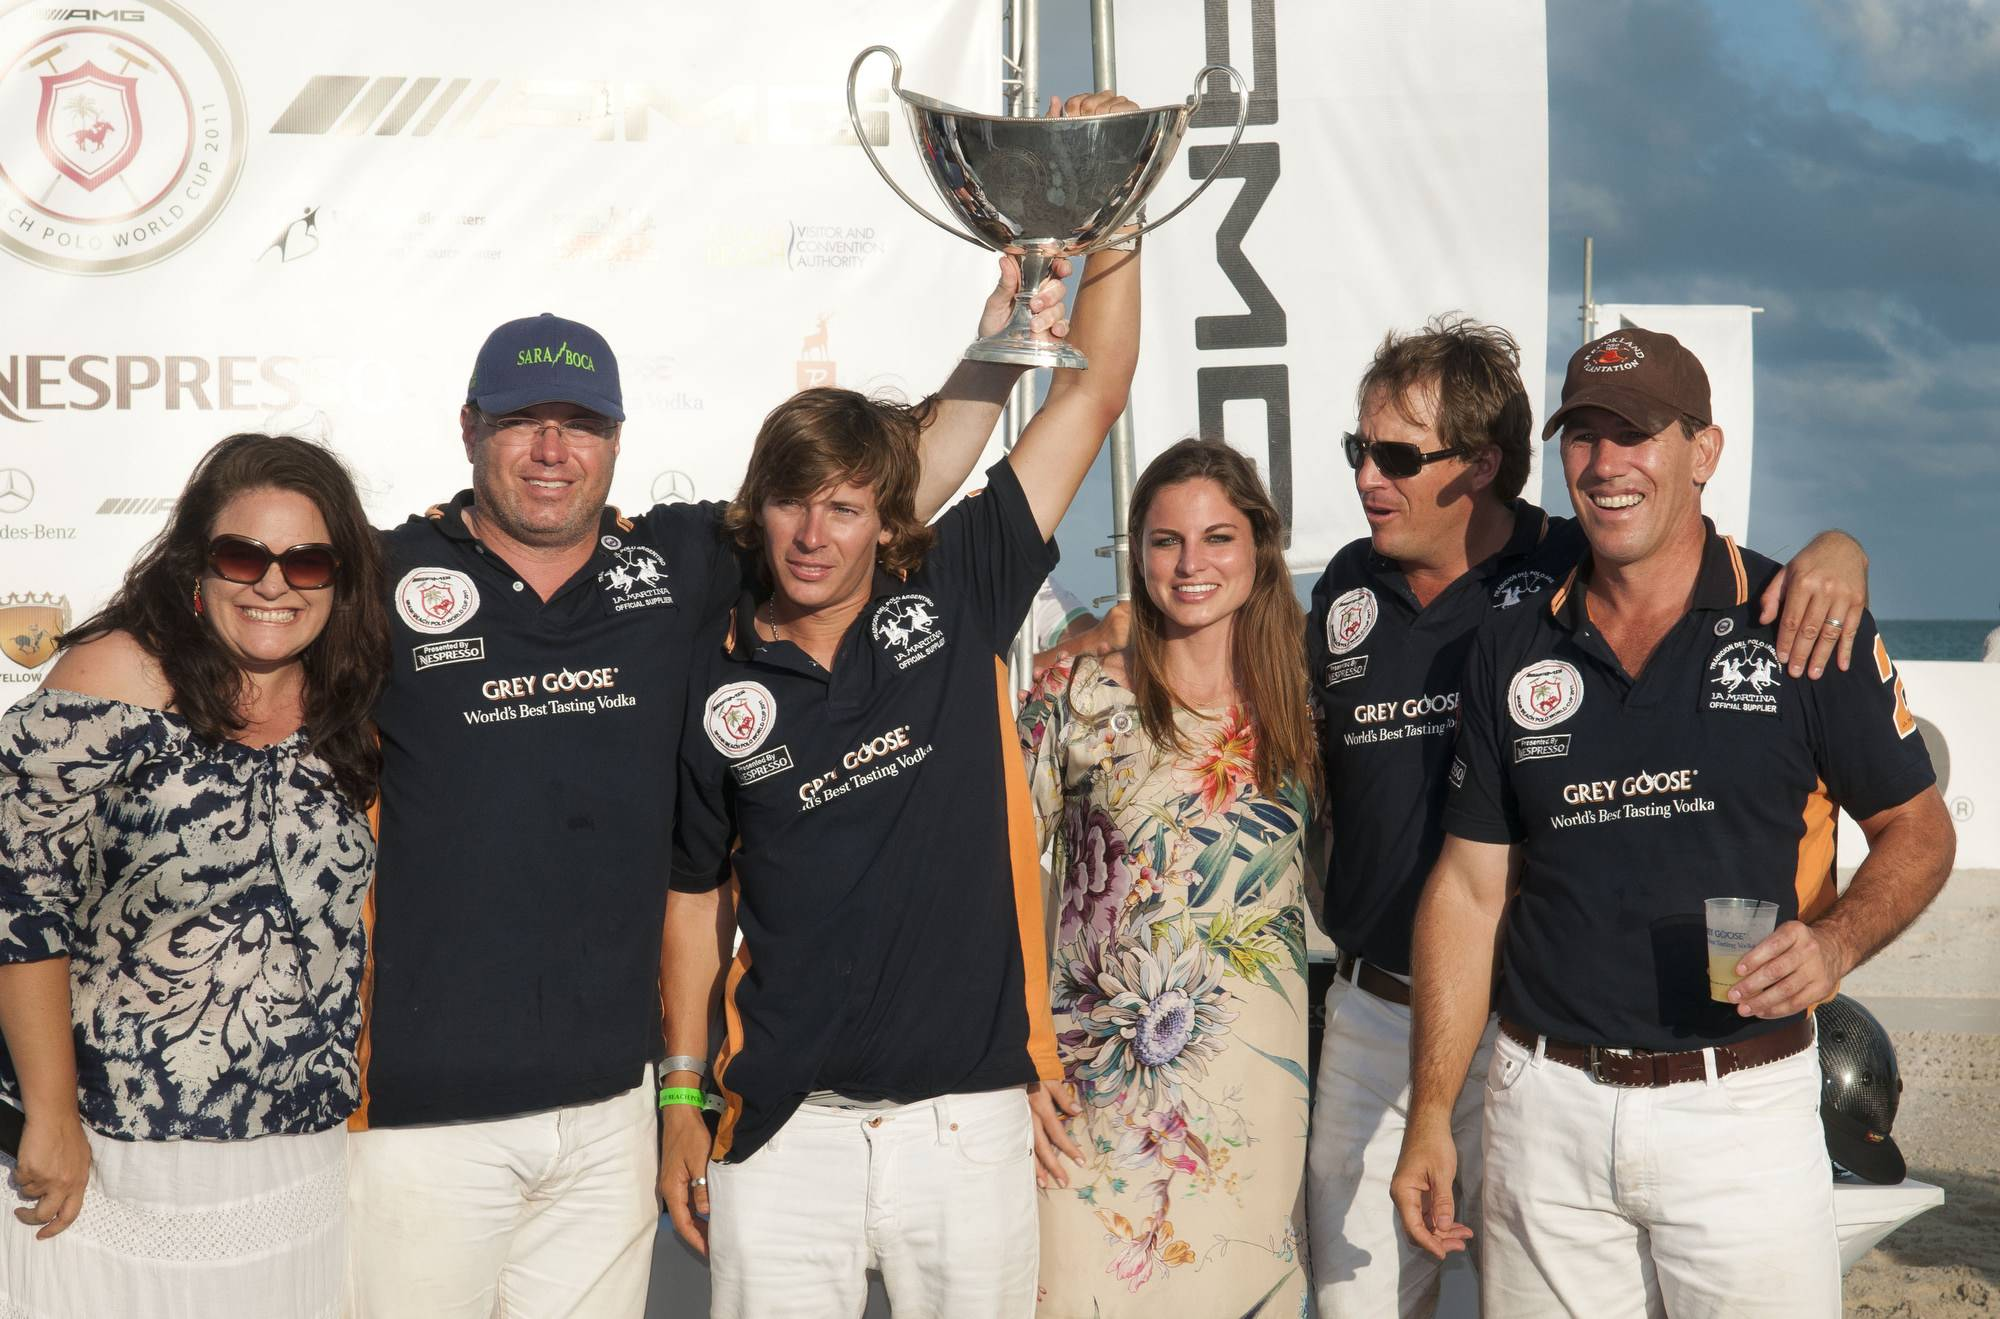 The Good life, The Polo Life! Highlights from the 2011 AMG Miami Beach Polo World Cup